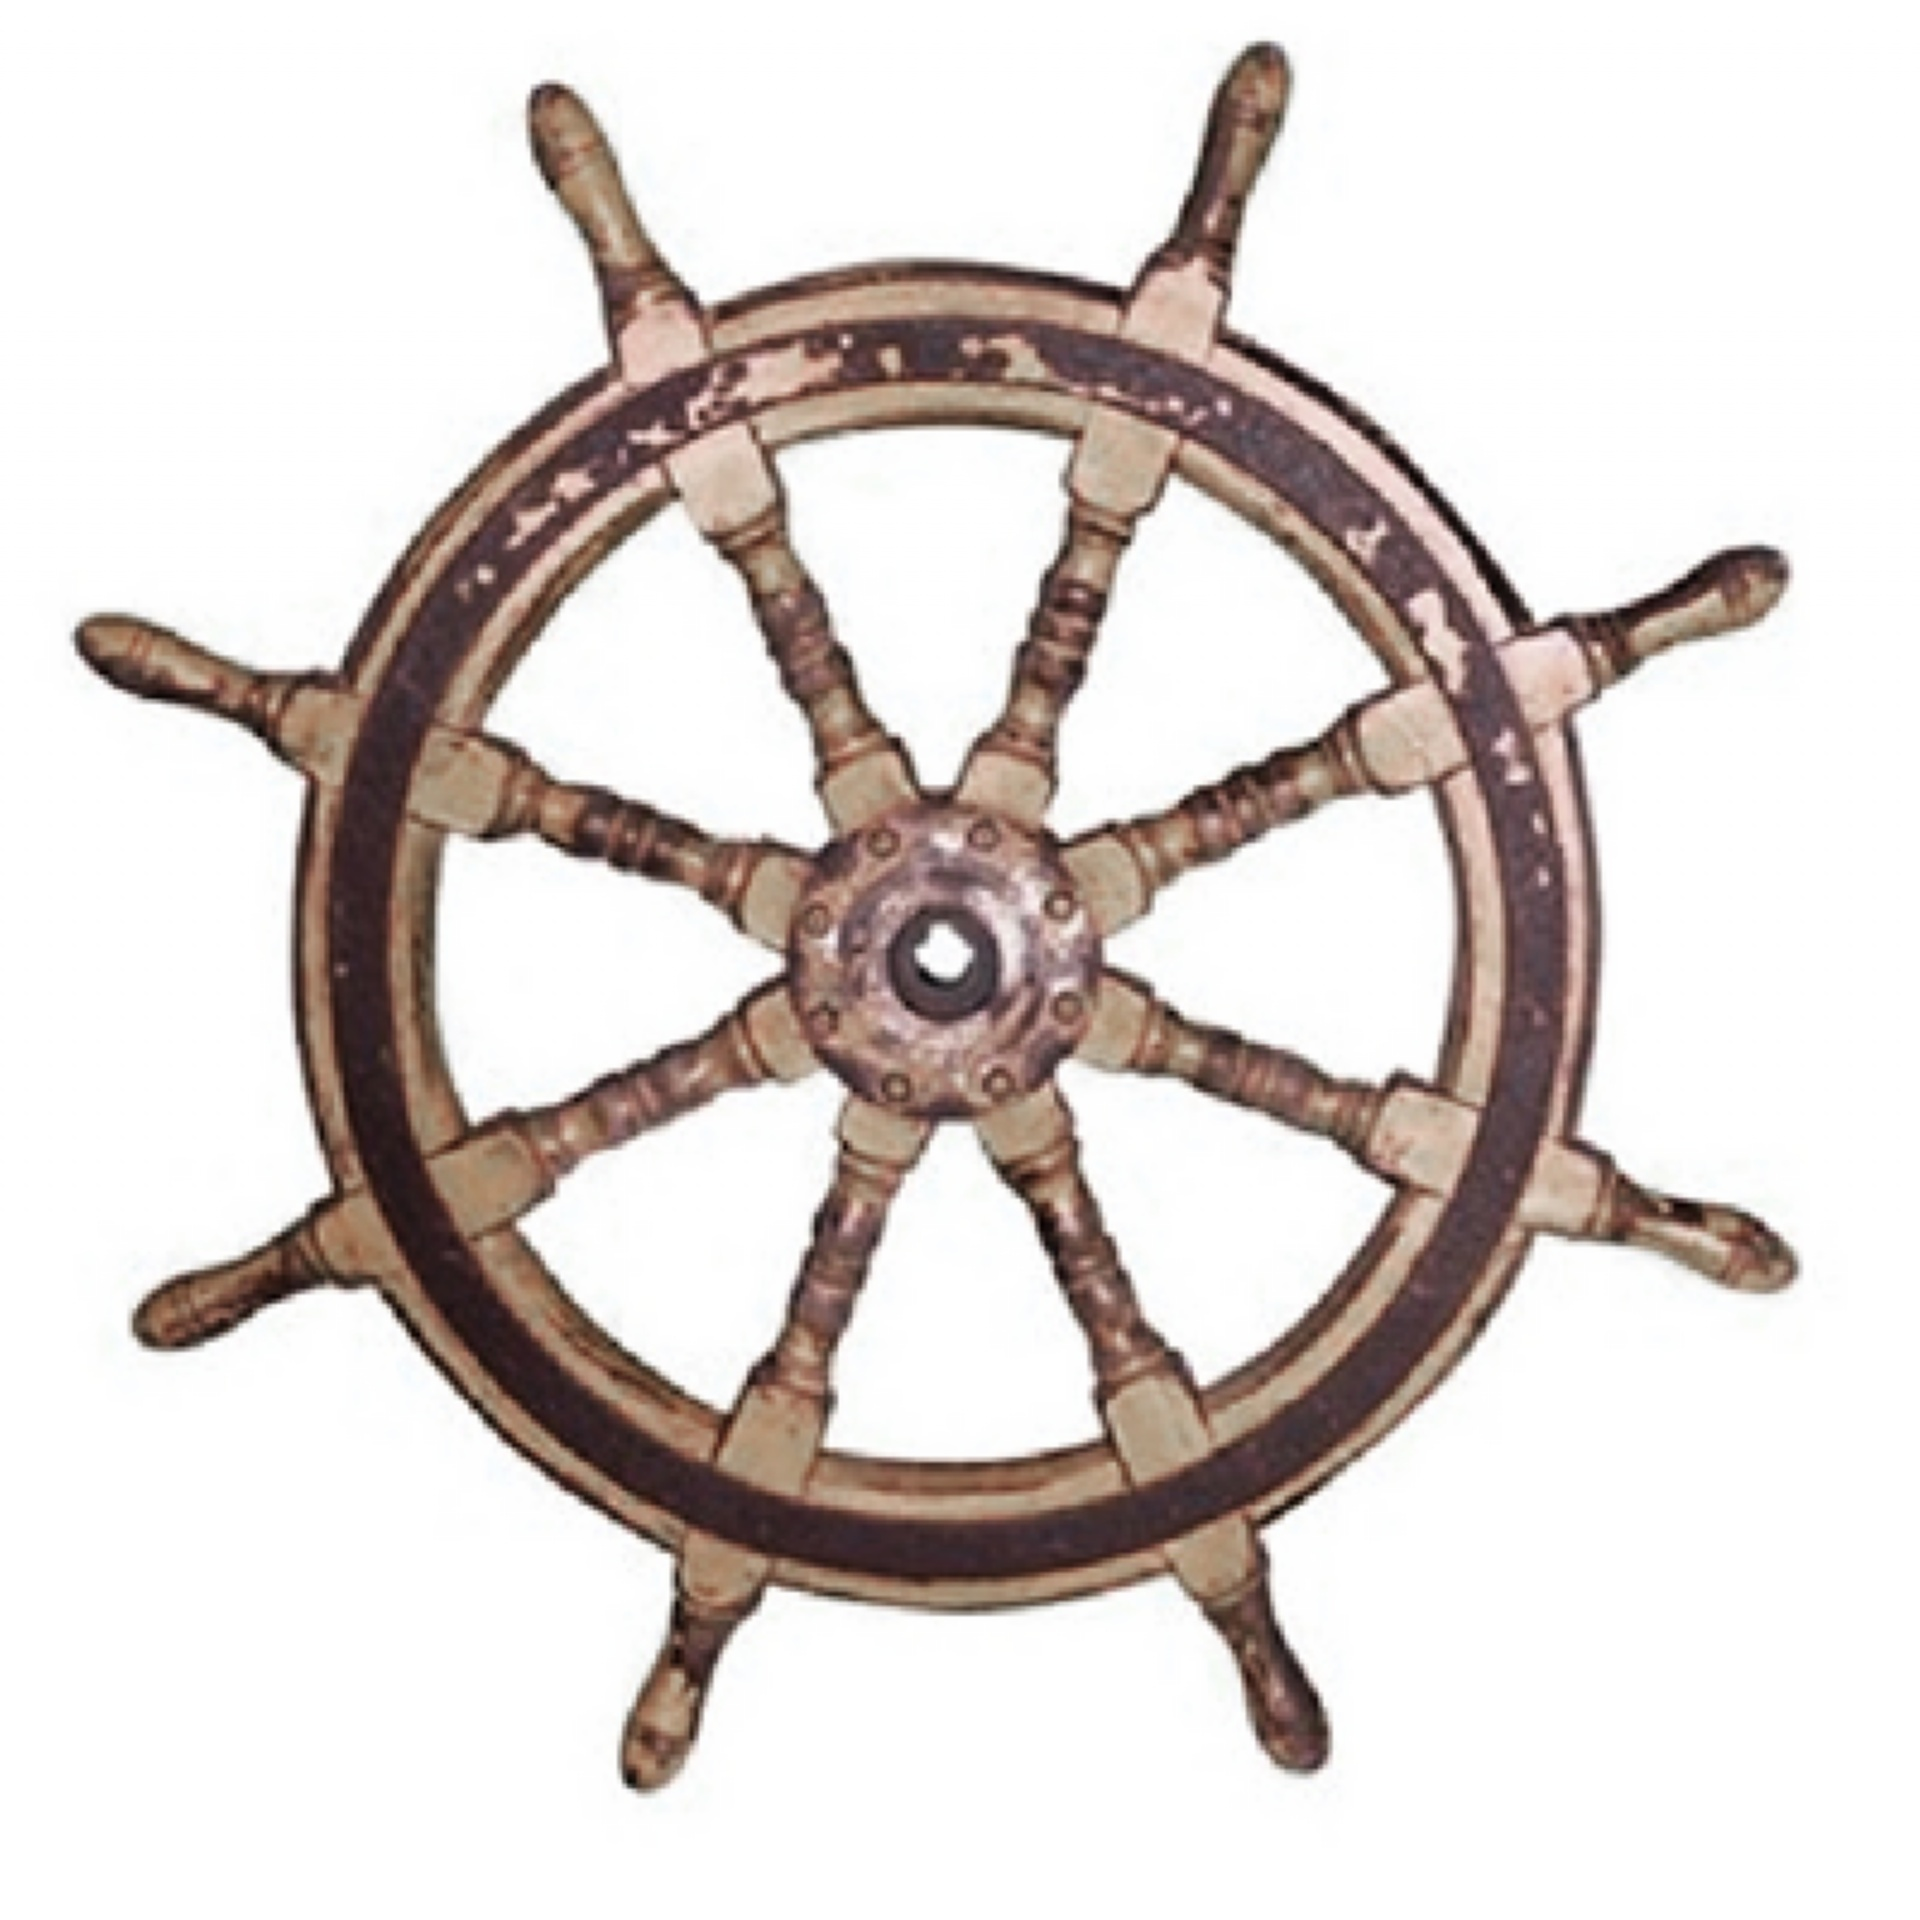 Reni Decors & Cadeaux | Home decor, Gift Shop & Antiques | Reni Decors -  BOAT STEERING WHEEL | Home Decor, Bedding, Antiques, Collectables & Gift shop in Saint-Lazare / Hudson, near Montreal. Bedding, textiles, antiques in beautiful Saint-Lazare, Quebec.